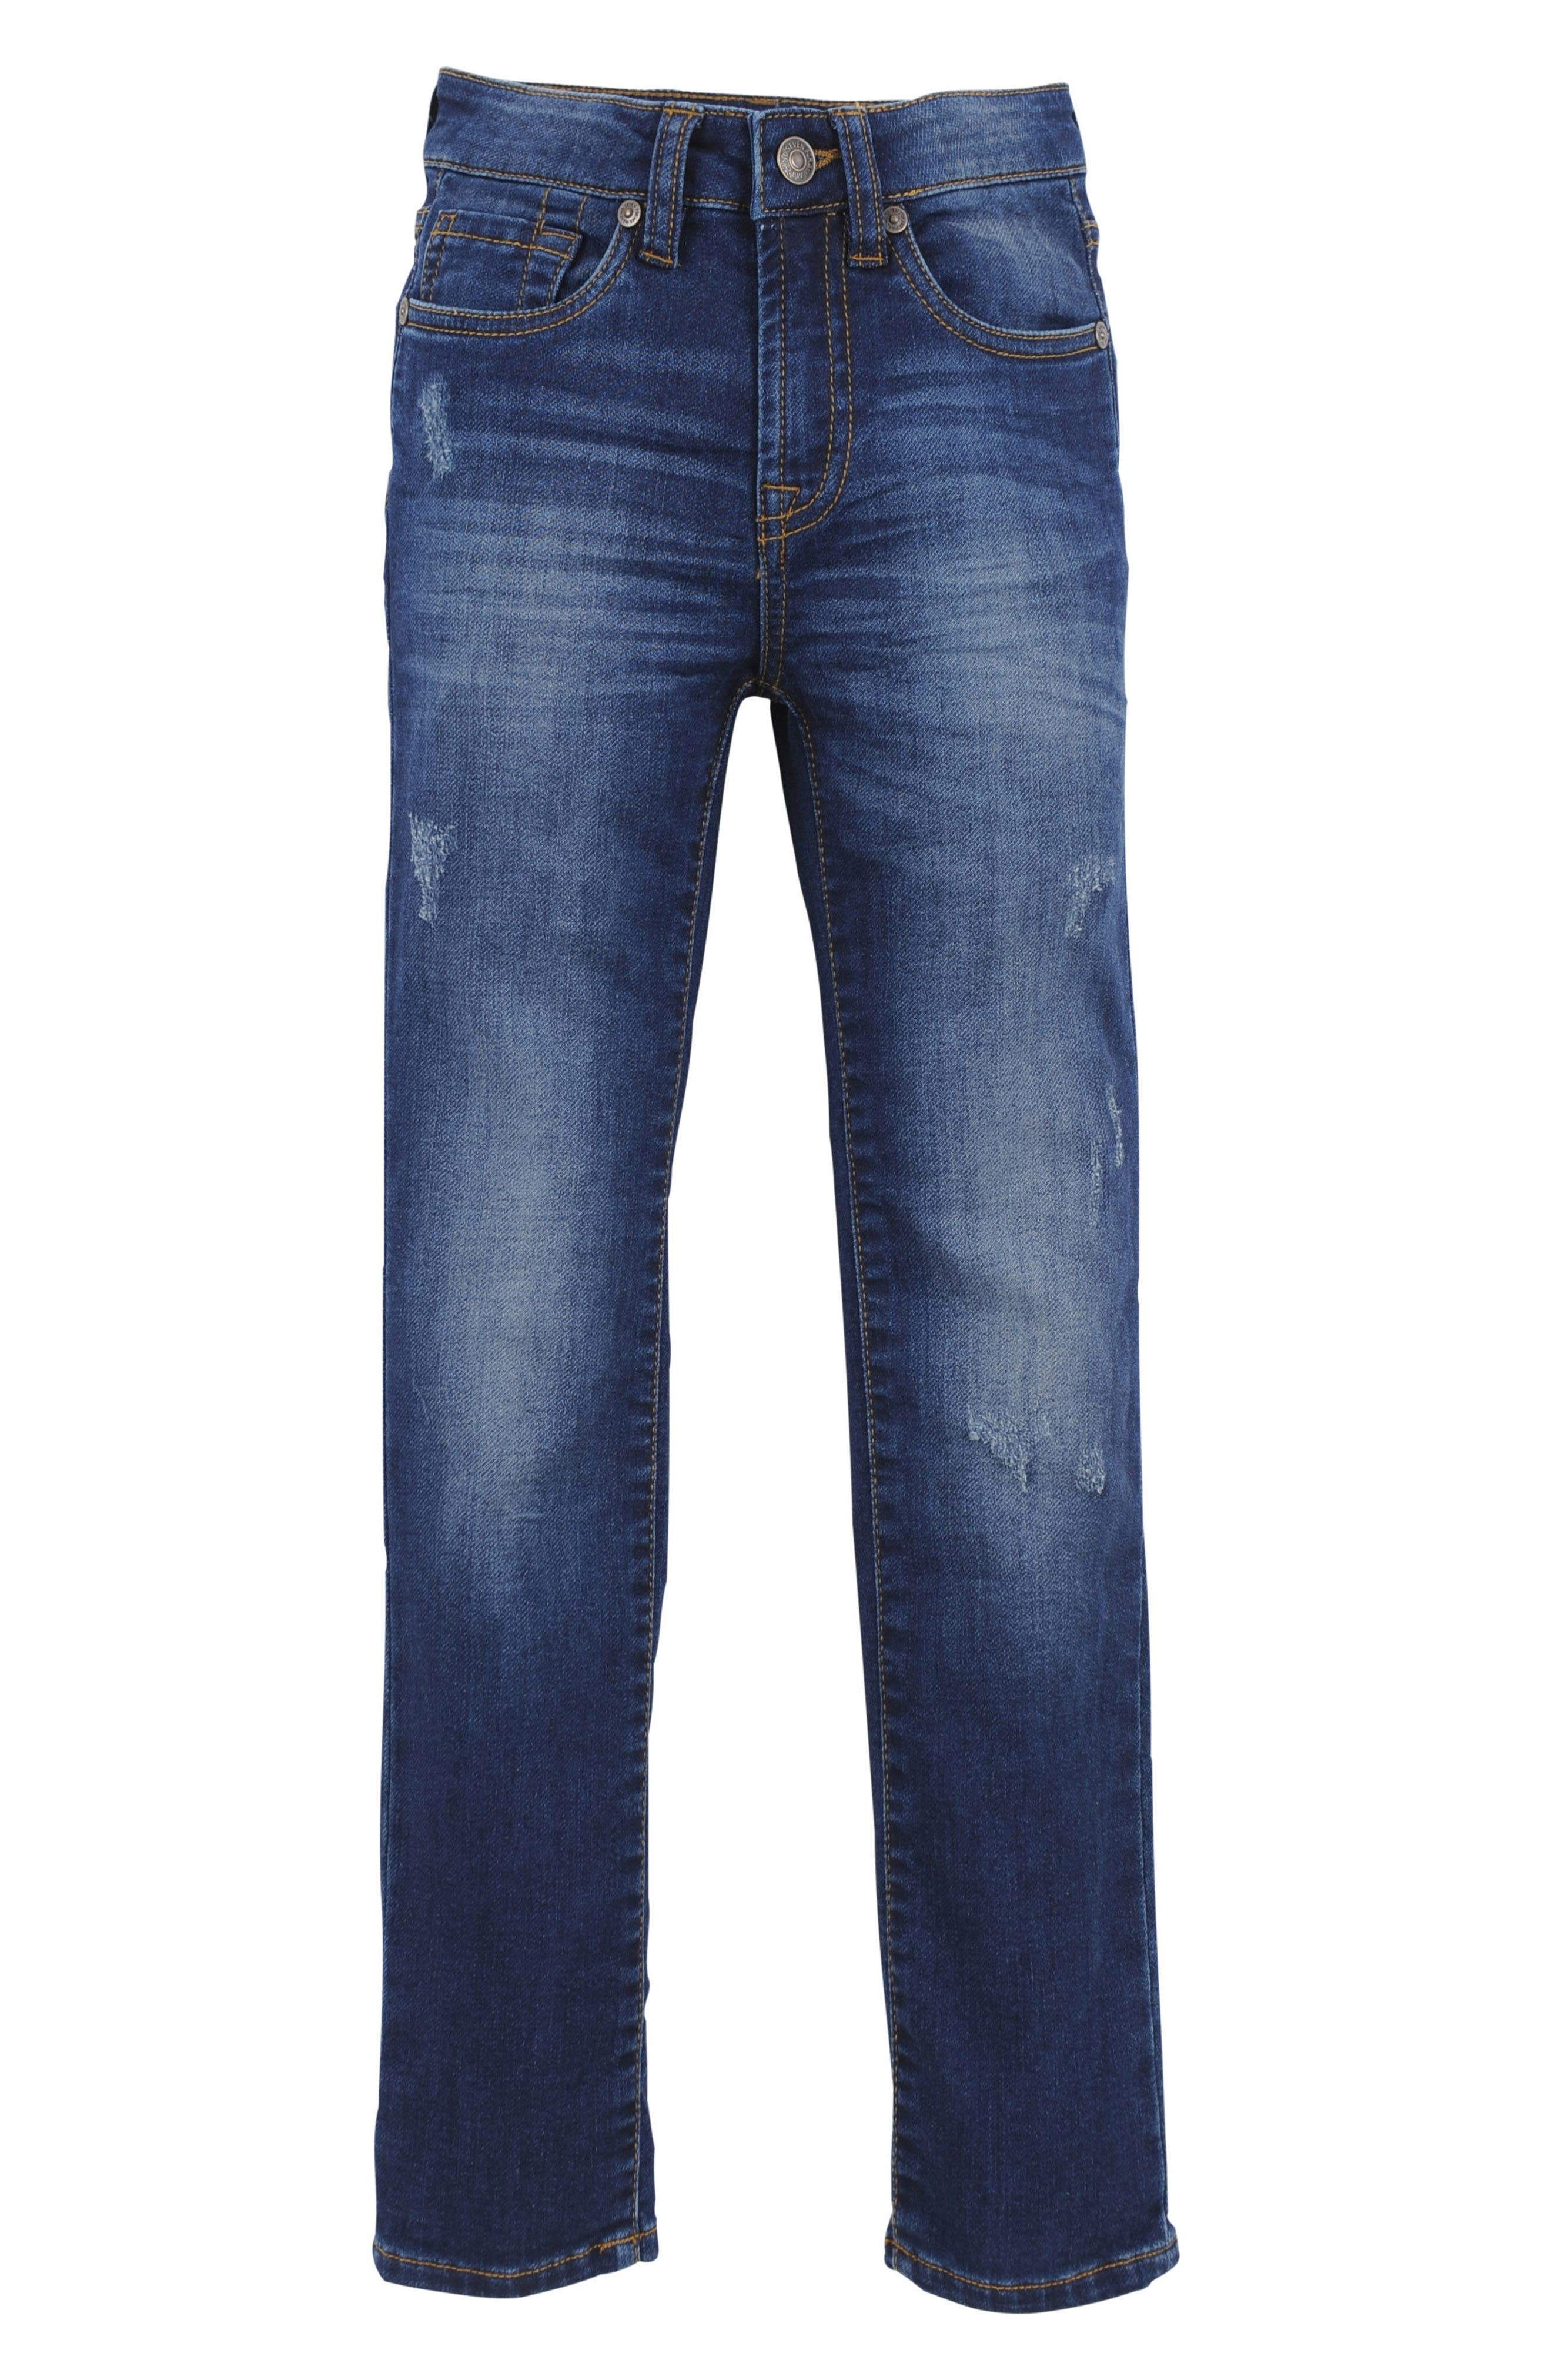 Slimmy Luxe Sport Jeans,                         Main,                         color, 453